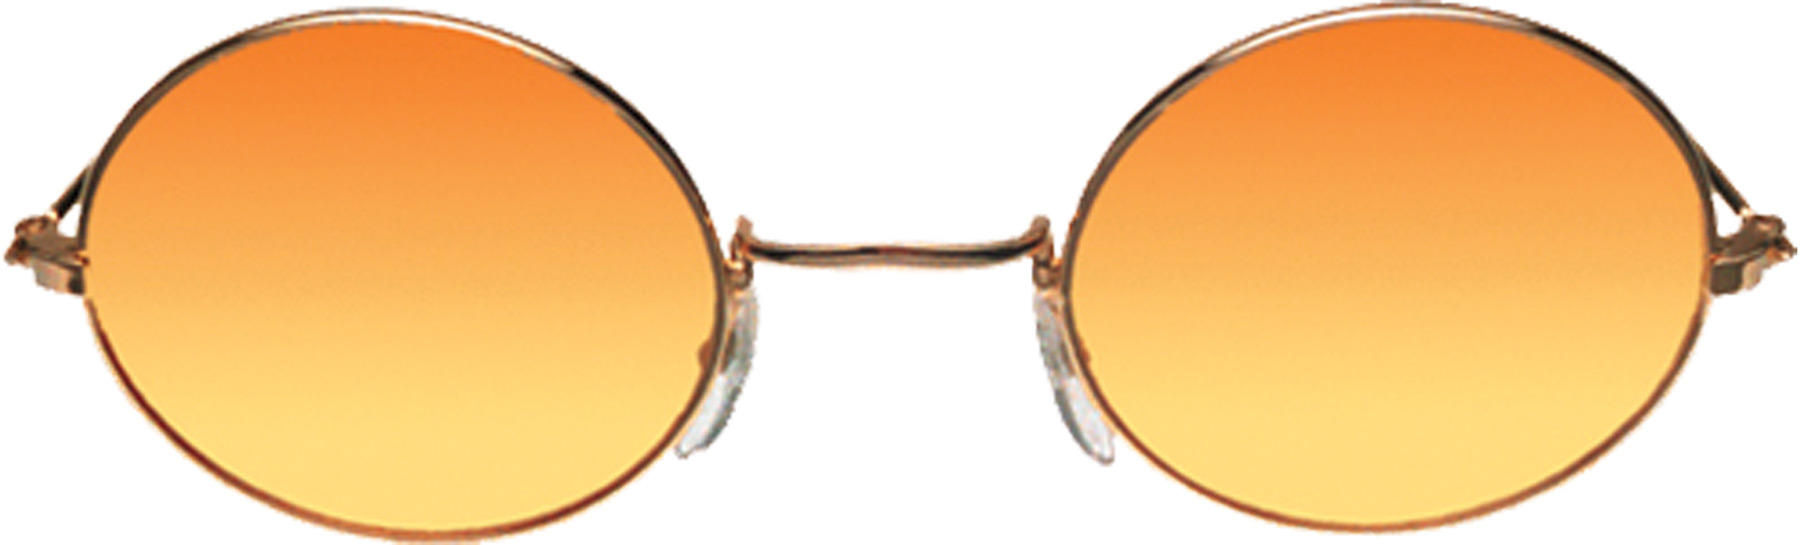 Featured Image for John Glasses